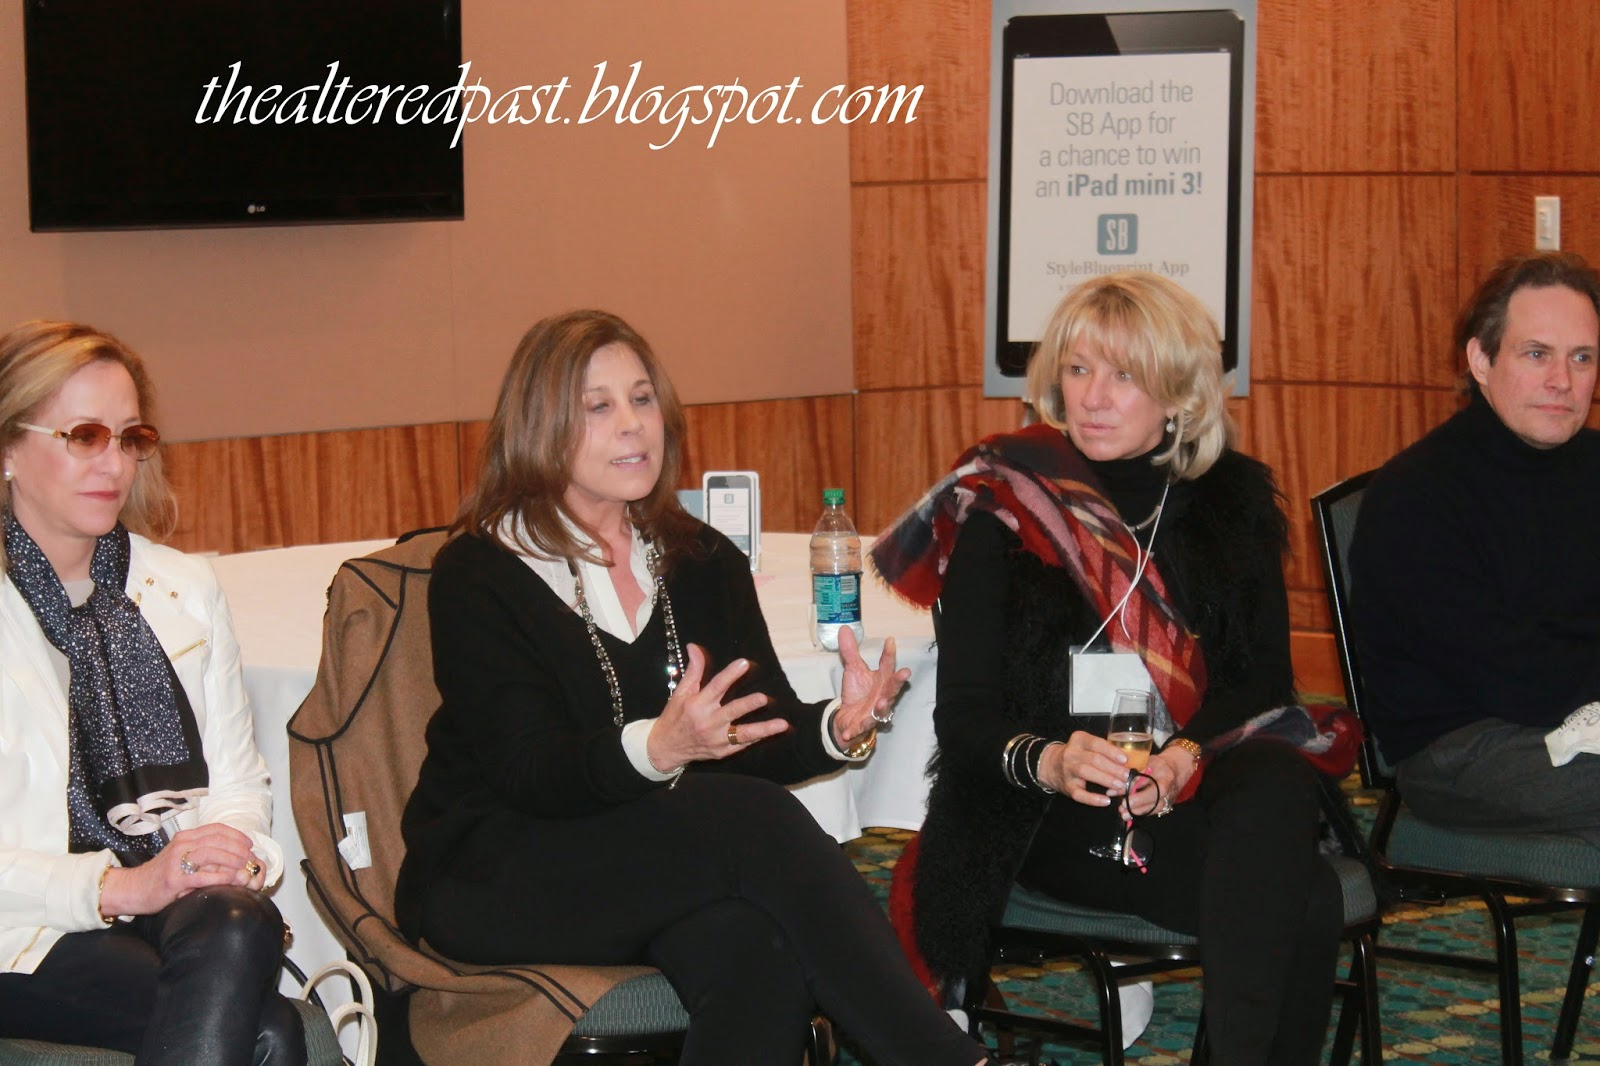 nashville antiques and garden show, carolyn englefield, suzanne kasler